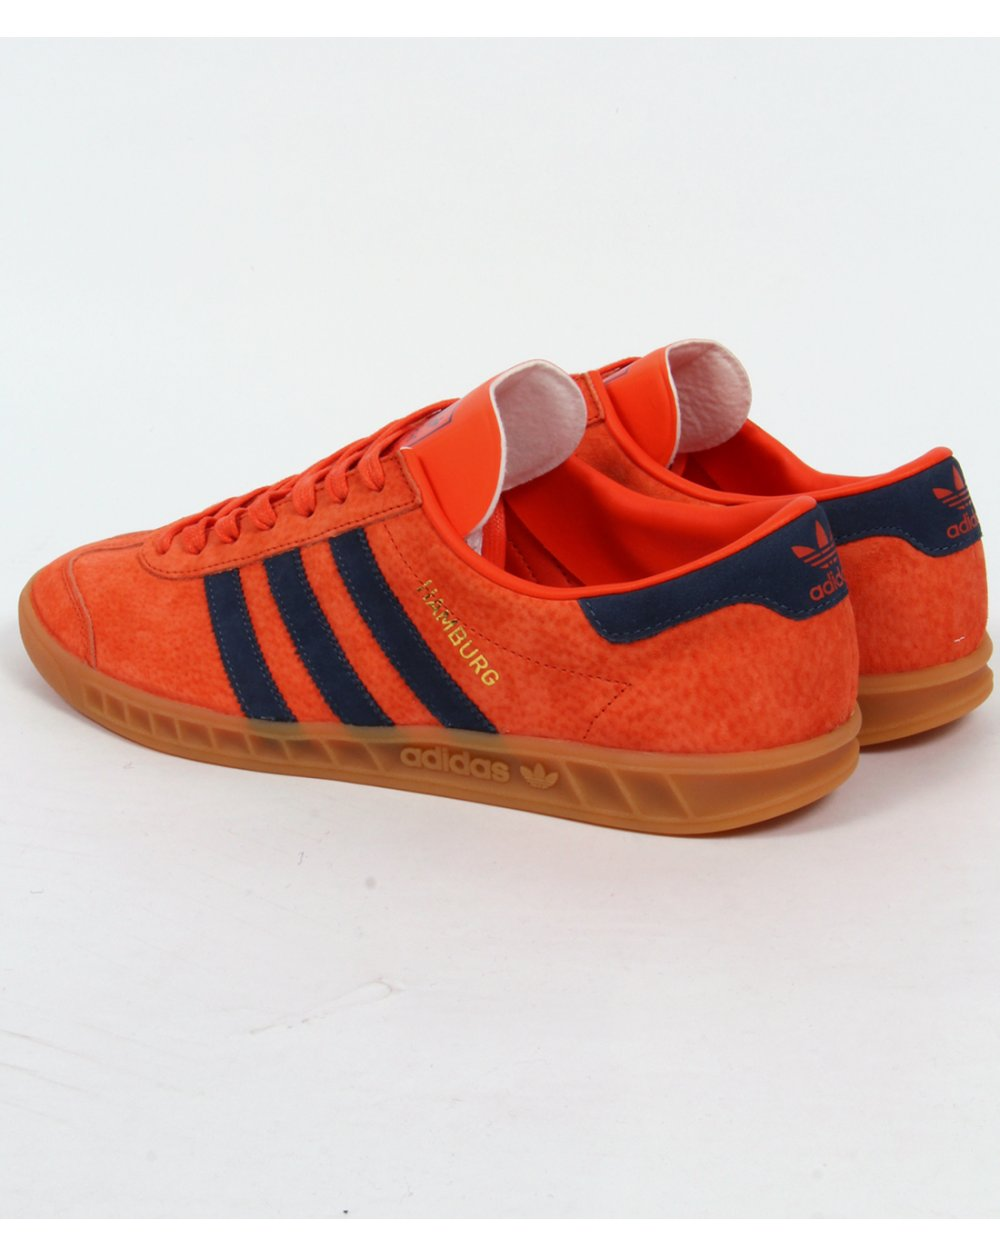 men's adidas red hamburg trainers